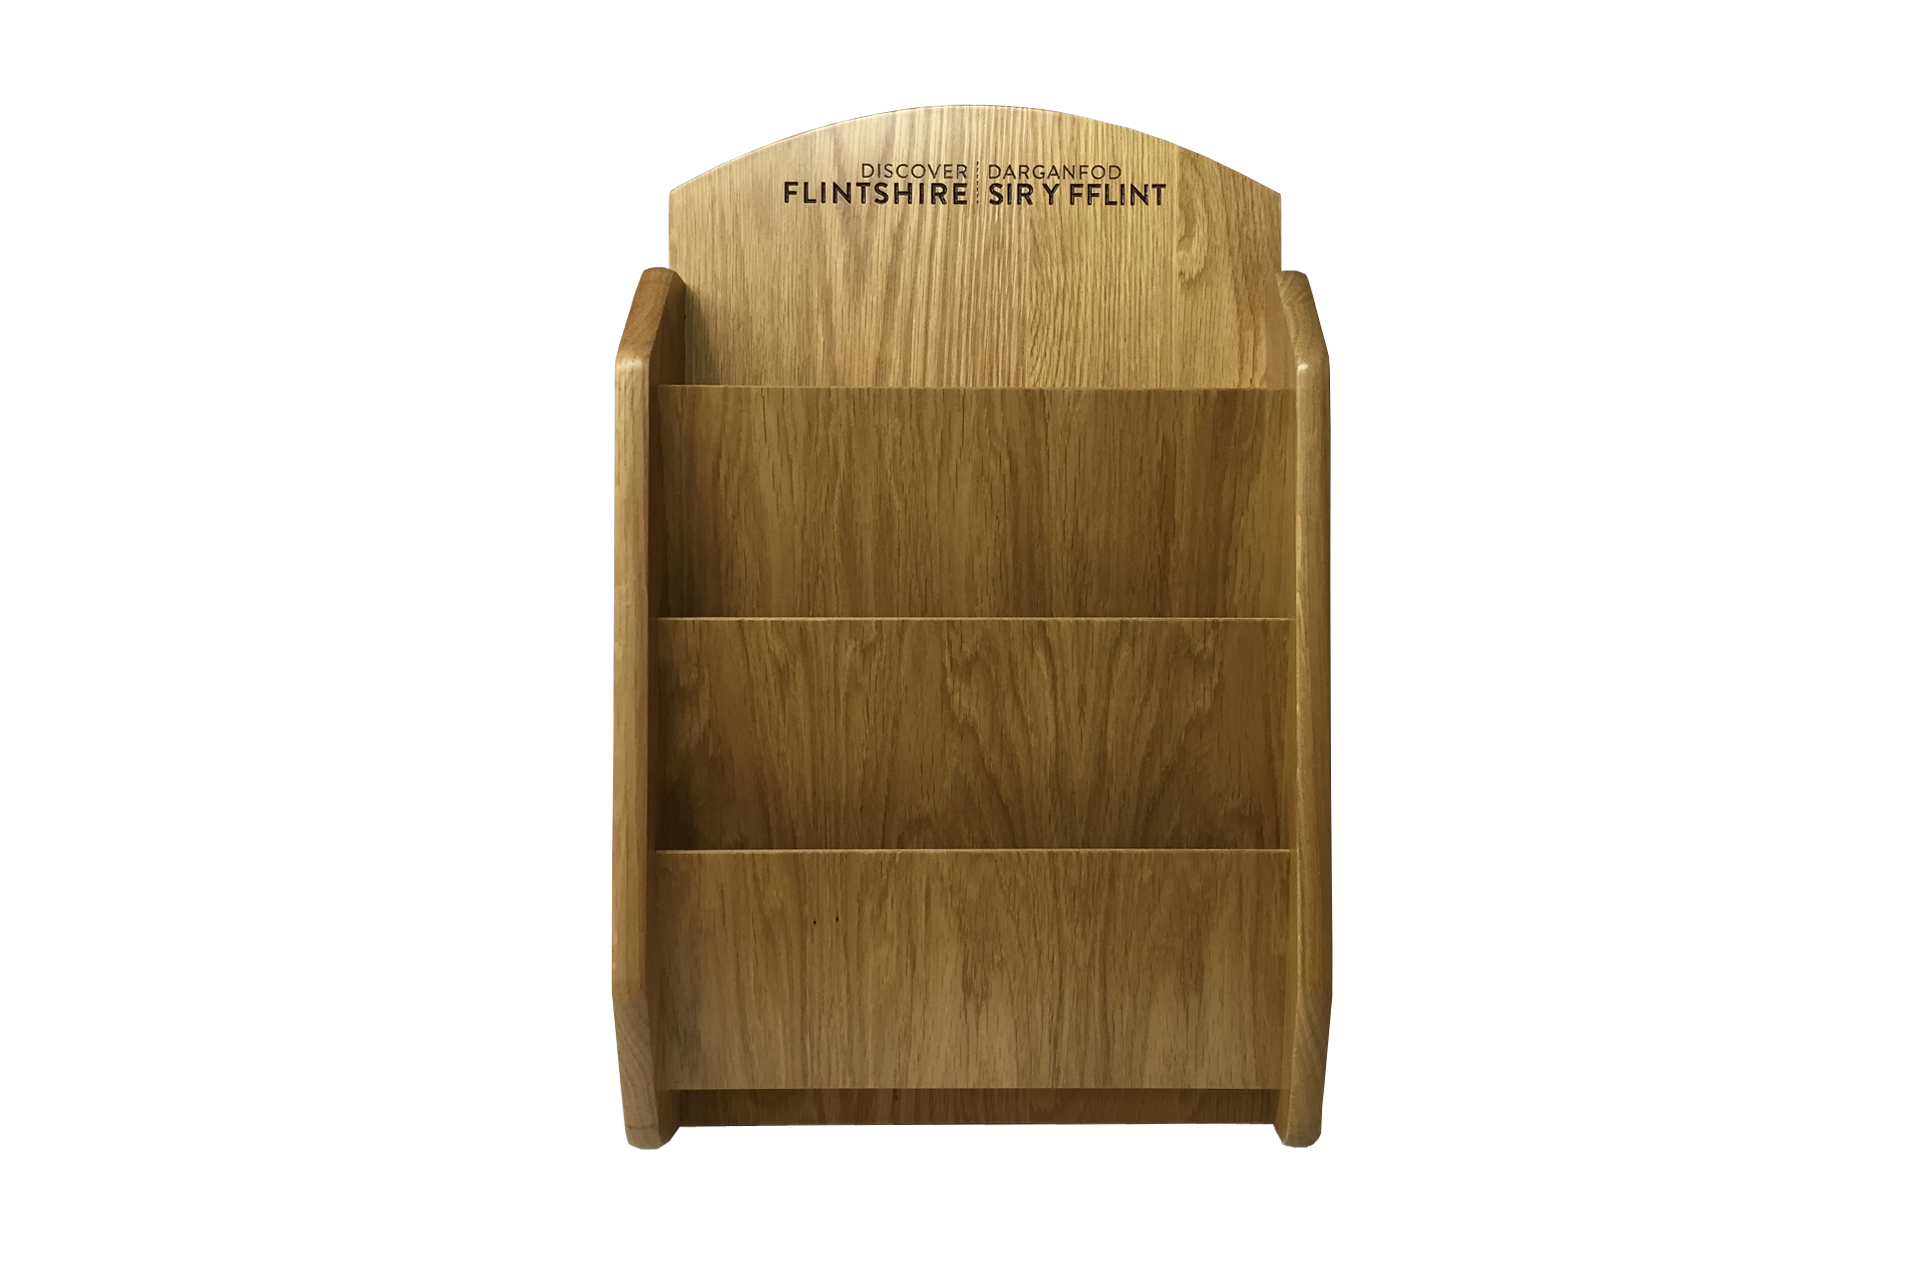 wall mounted tailor made wooden leaflet holder for hotels and shops